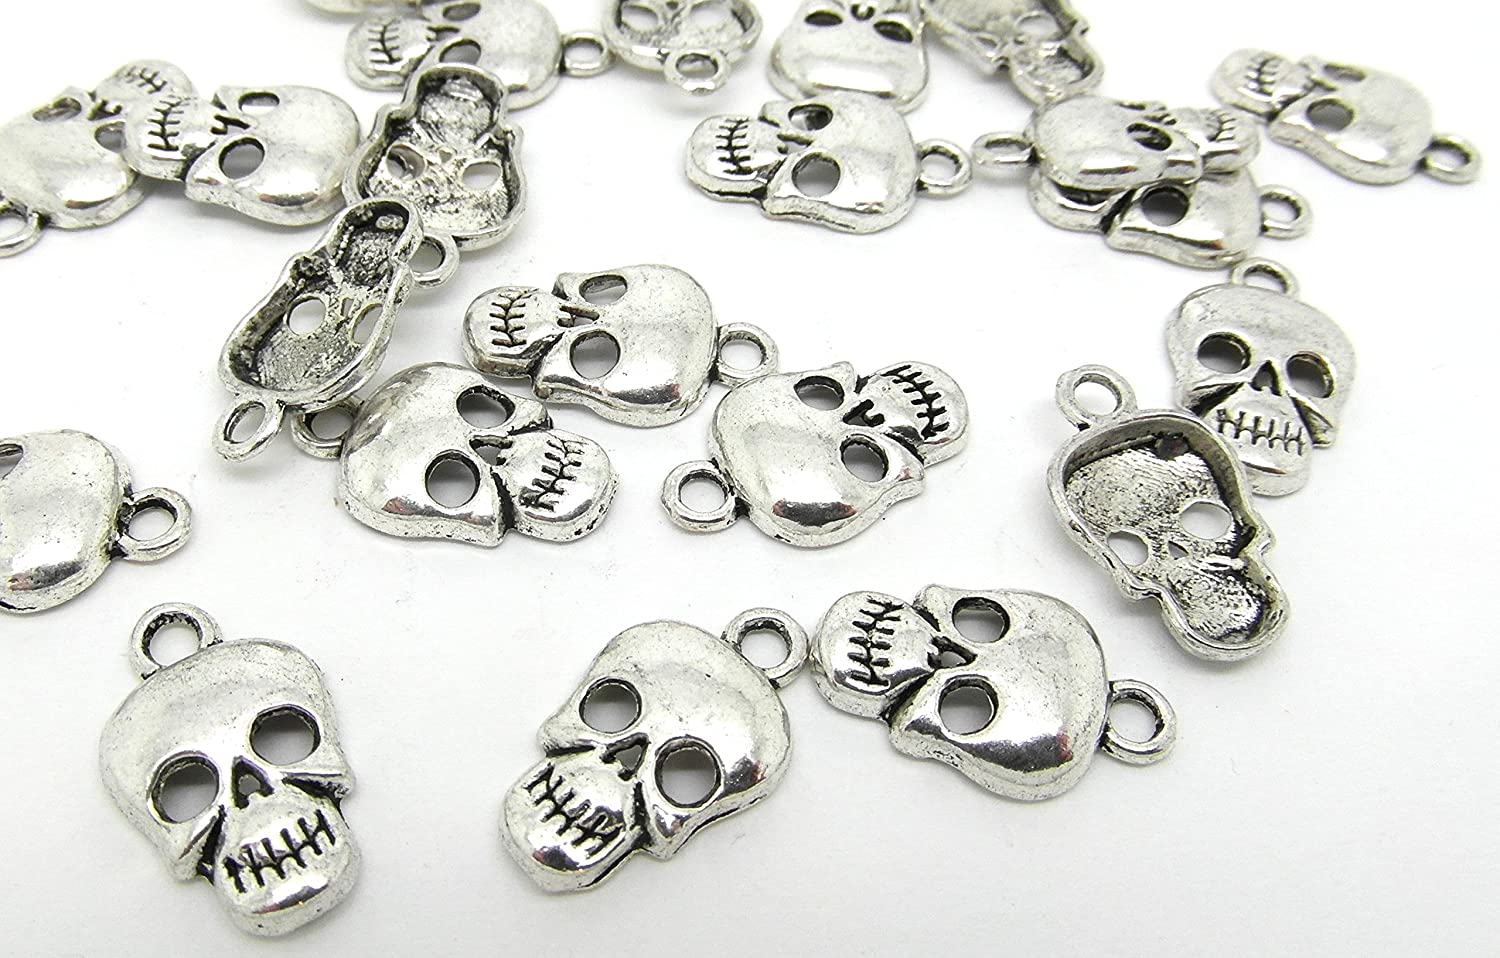 20 Skull Charms Antique Silver Tone 17mm Gothic Halloween Scary Pendants J07782H Julz Beads